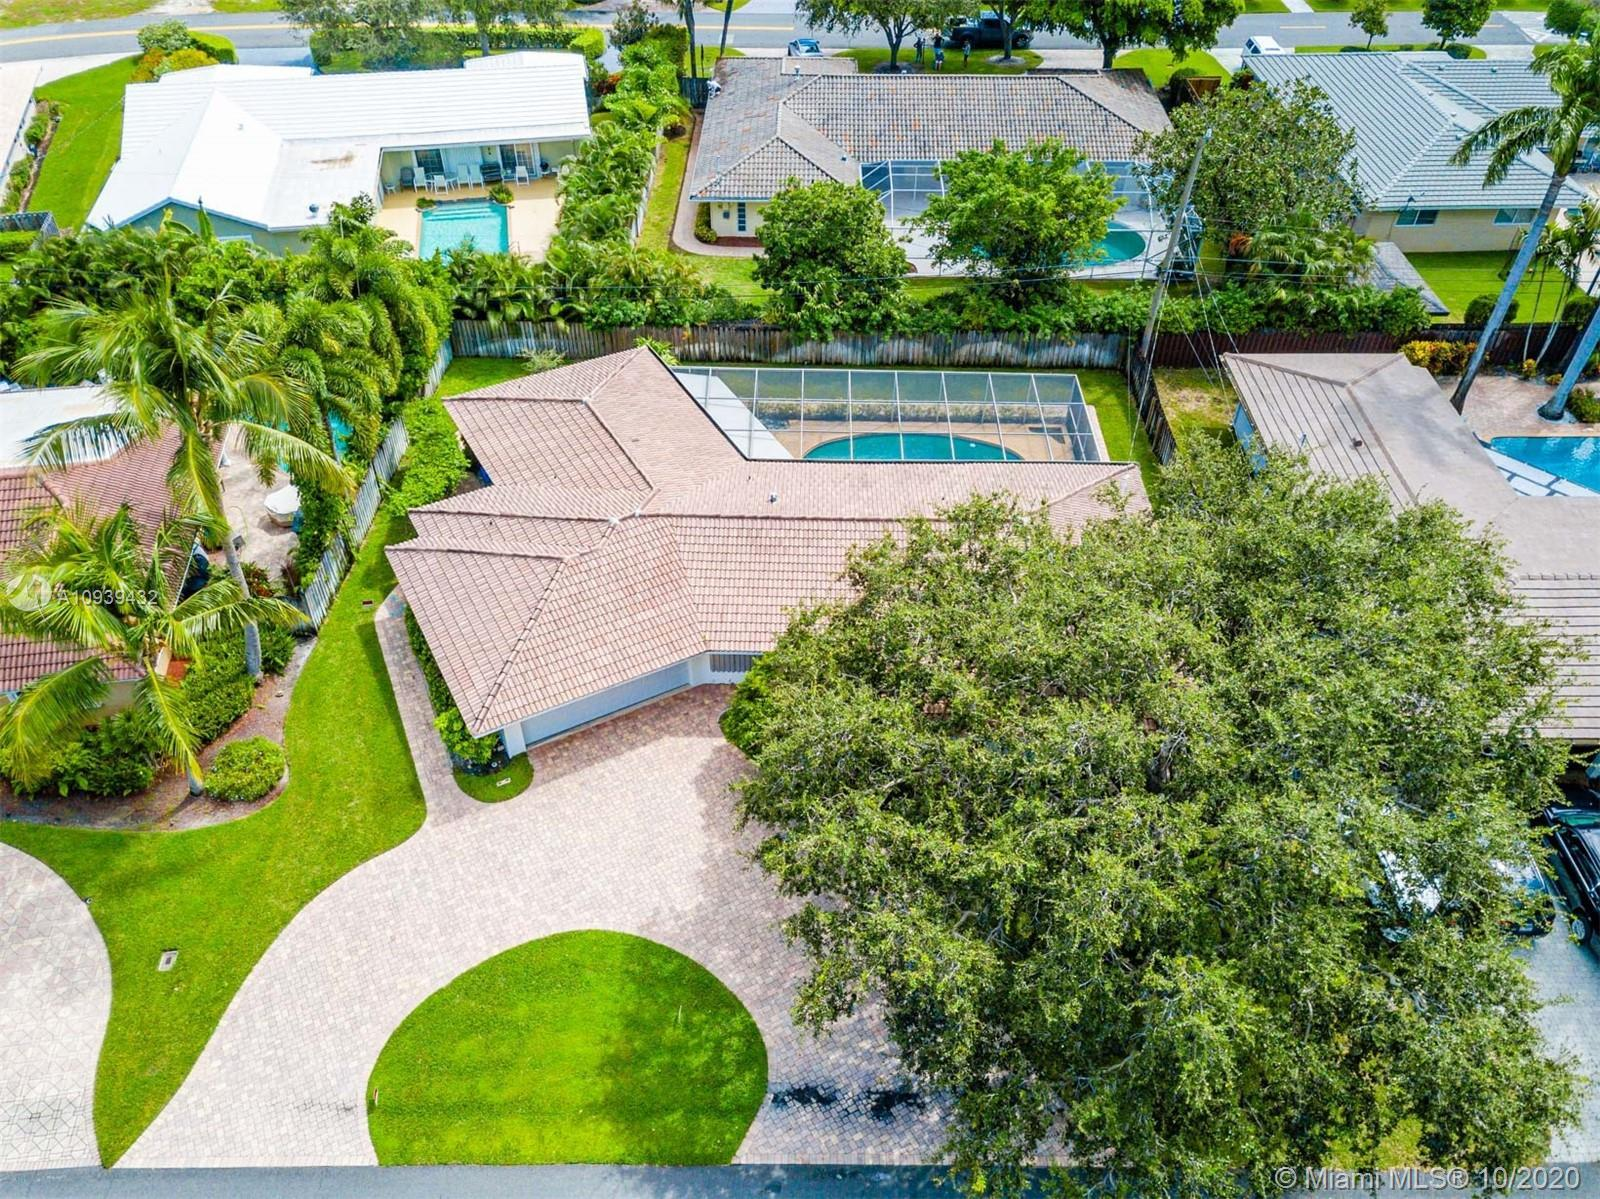 This 3/2 pool home in the heart of Ft. Lauderdale is ready to make your own! Property features ceram